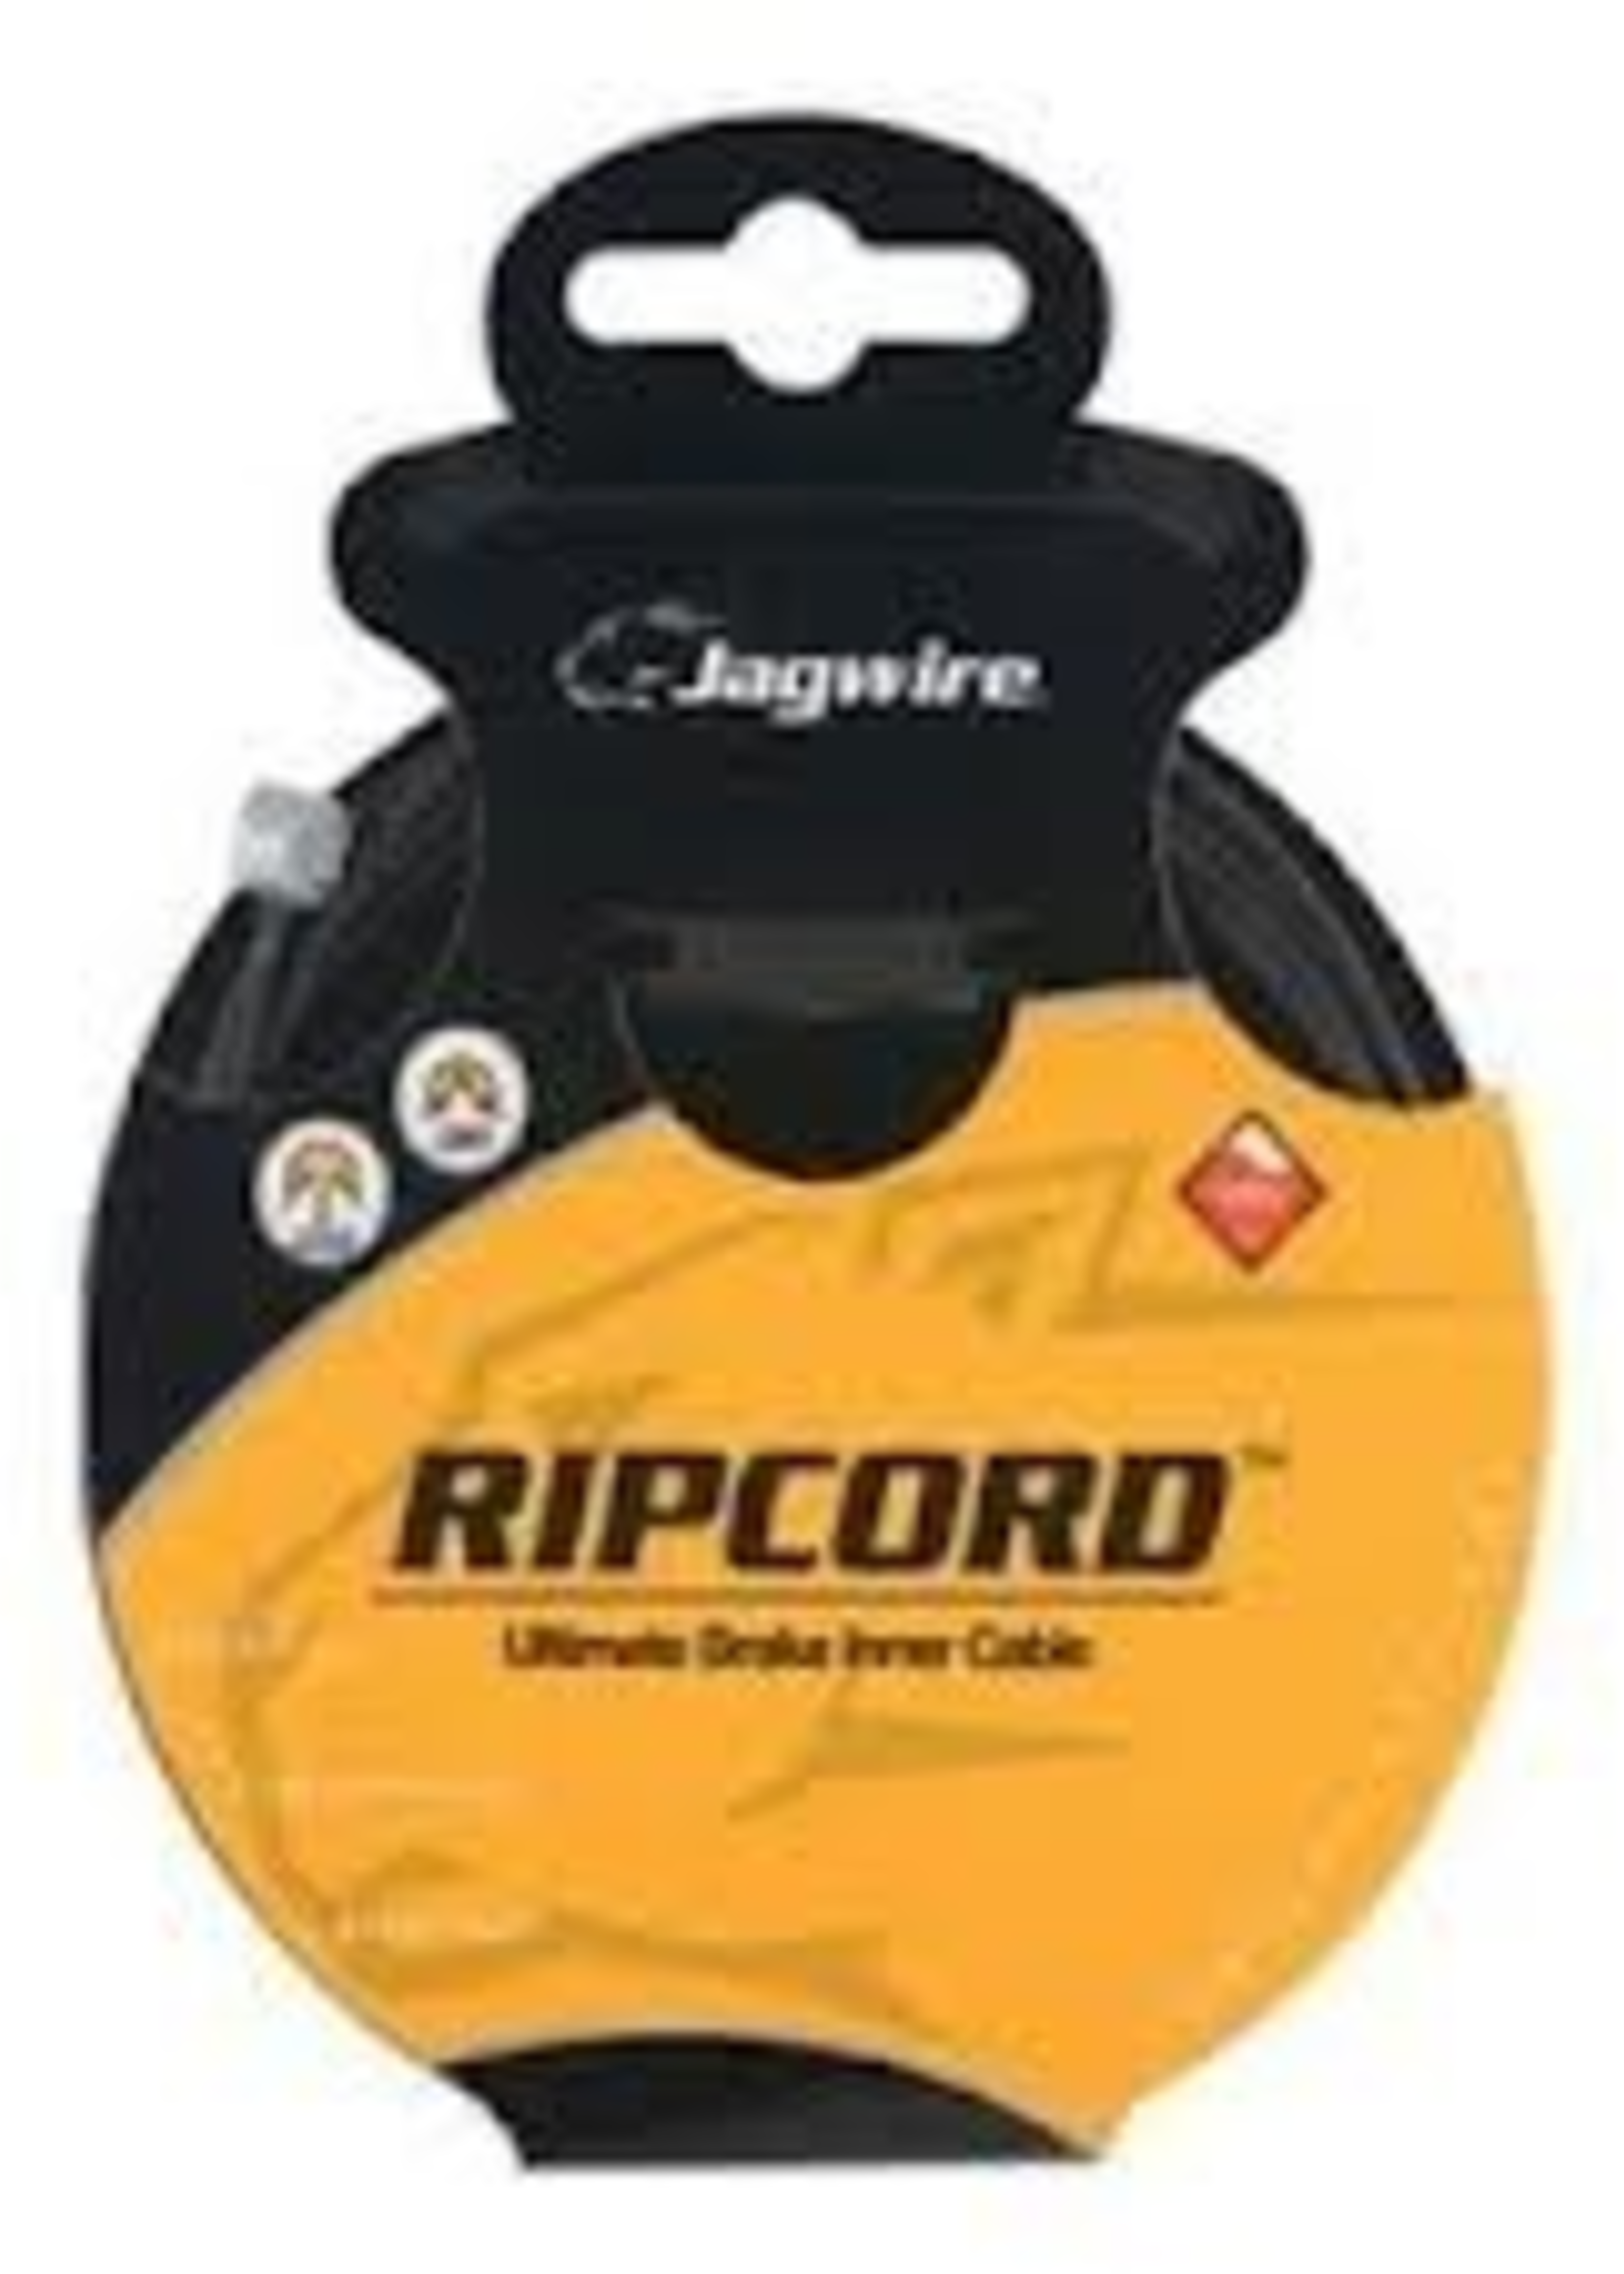 Jagwire Jagwire Ripcord Slick Brake Cable For ATB Tandem - Stainless Steel - 1.5X3500mm